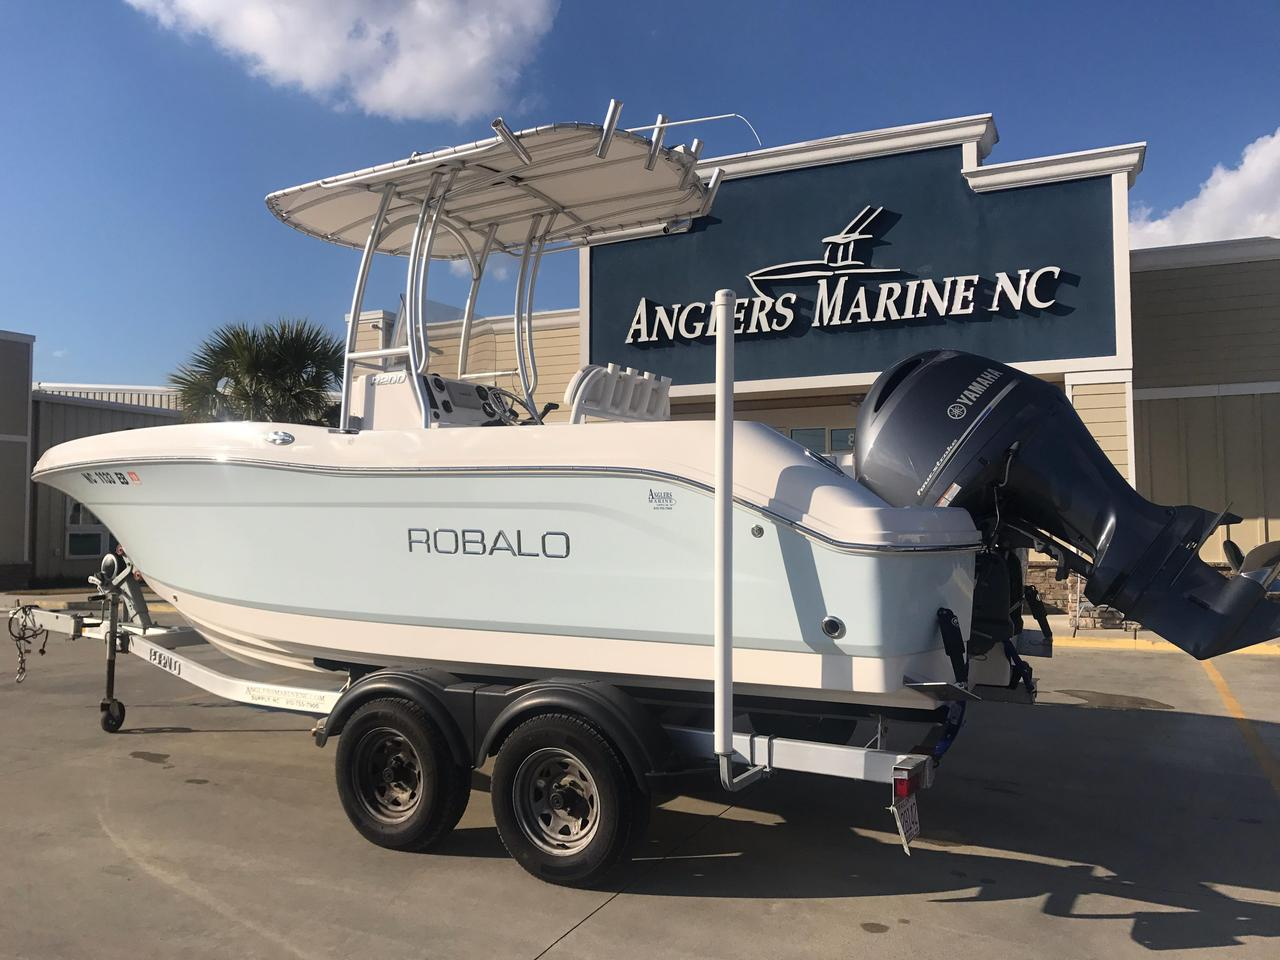 2015 used robalo r200 center console fishing boat for sale for Used fishing boats for sale in eastern nc